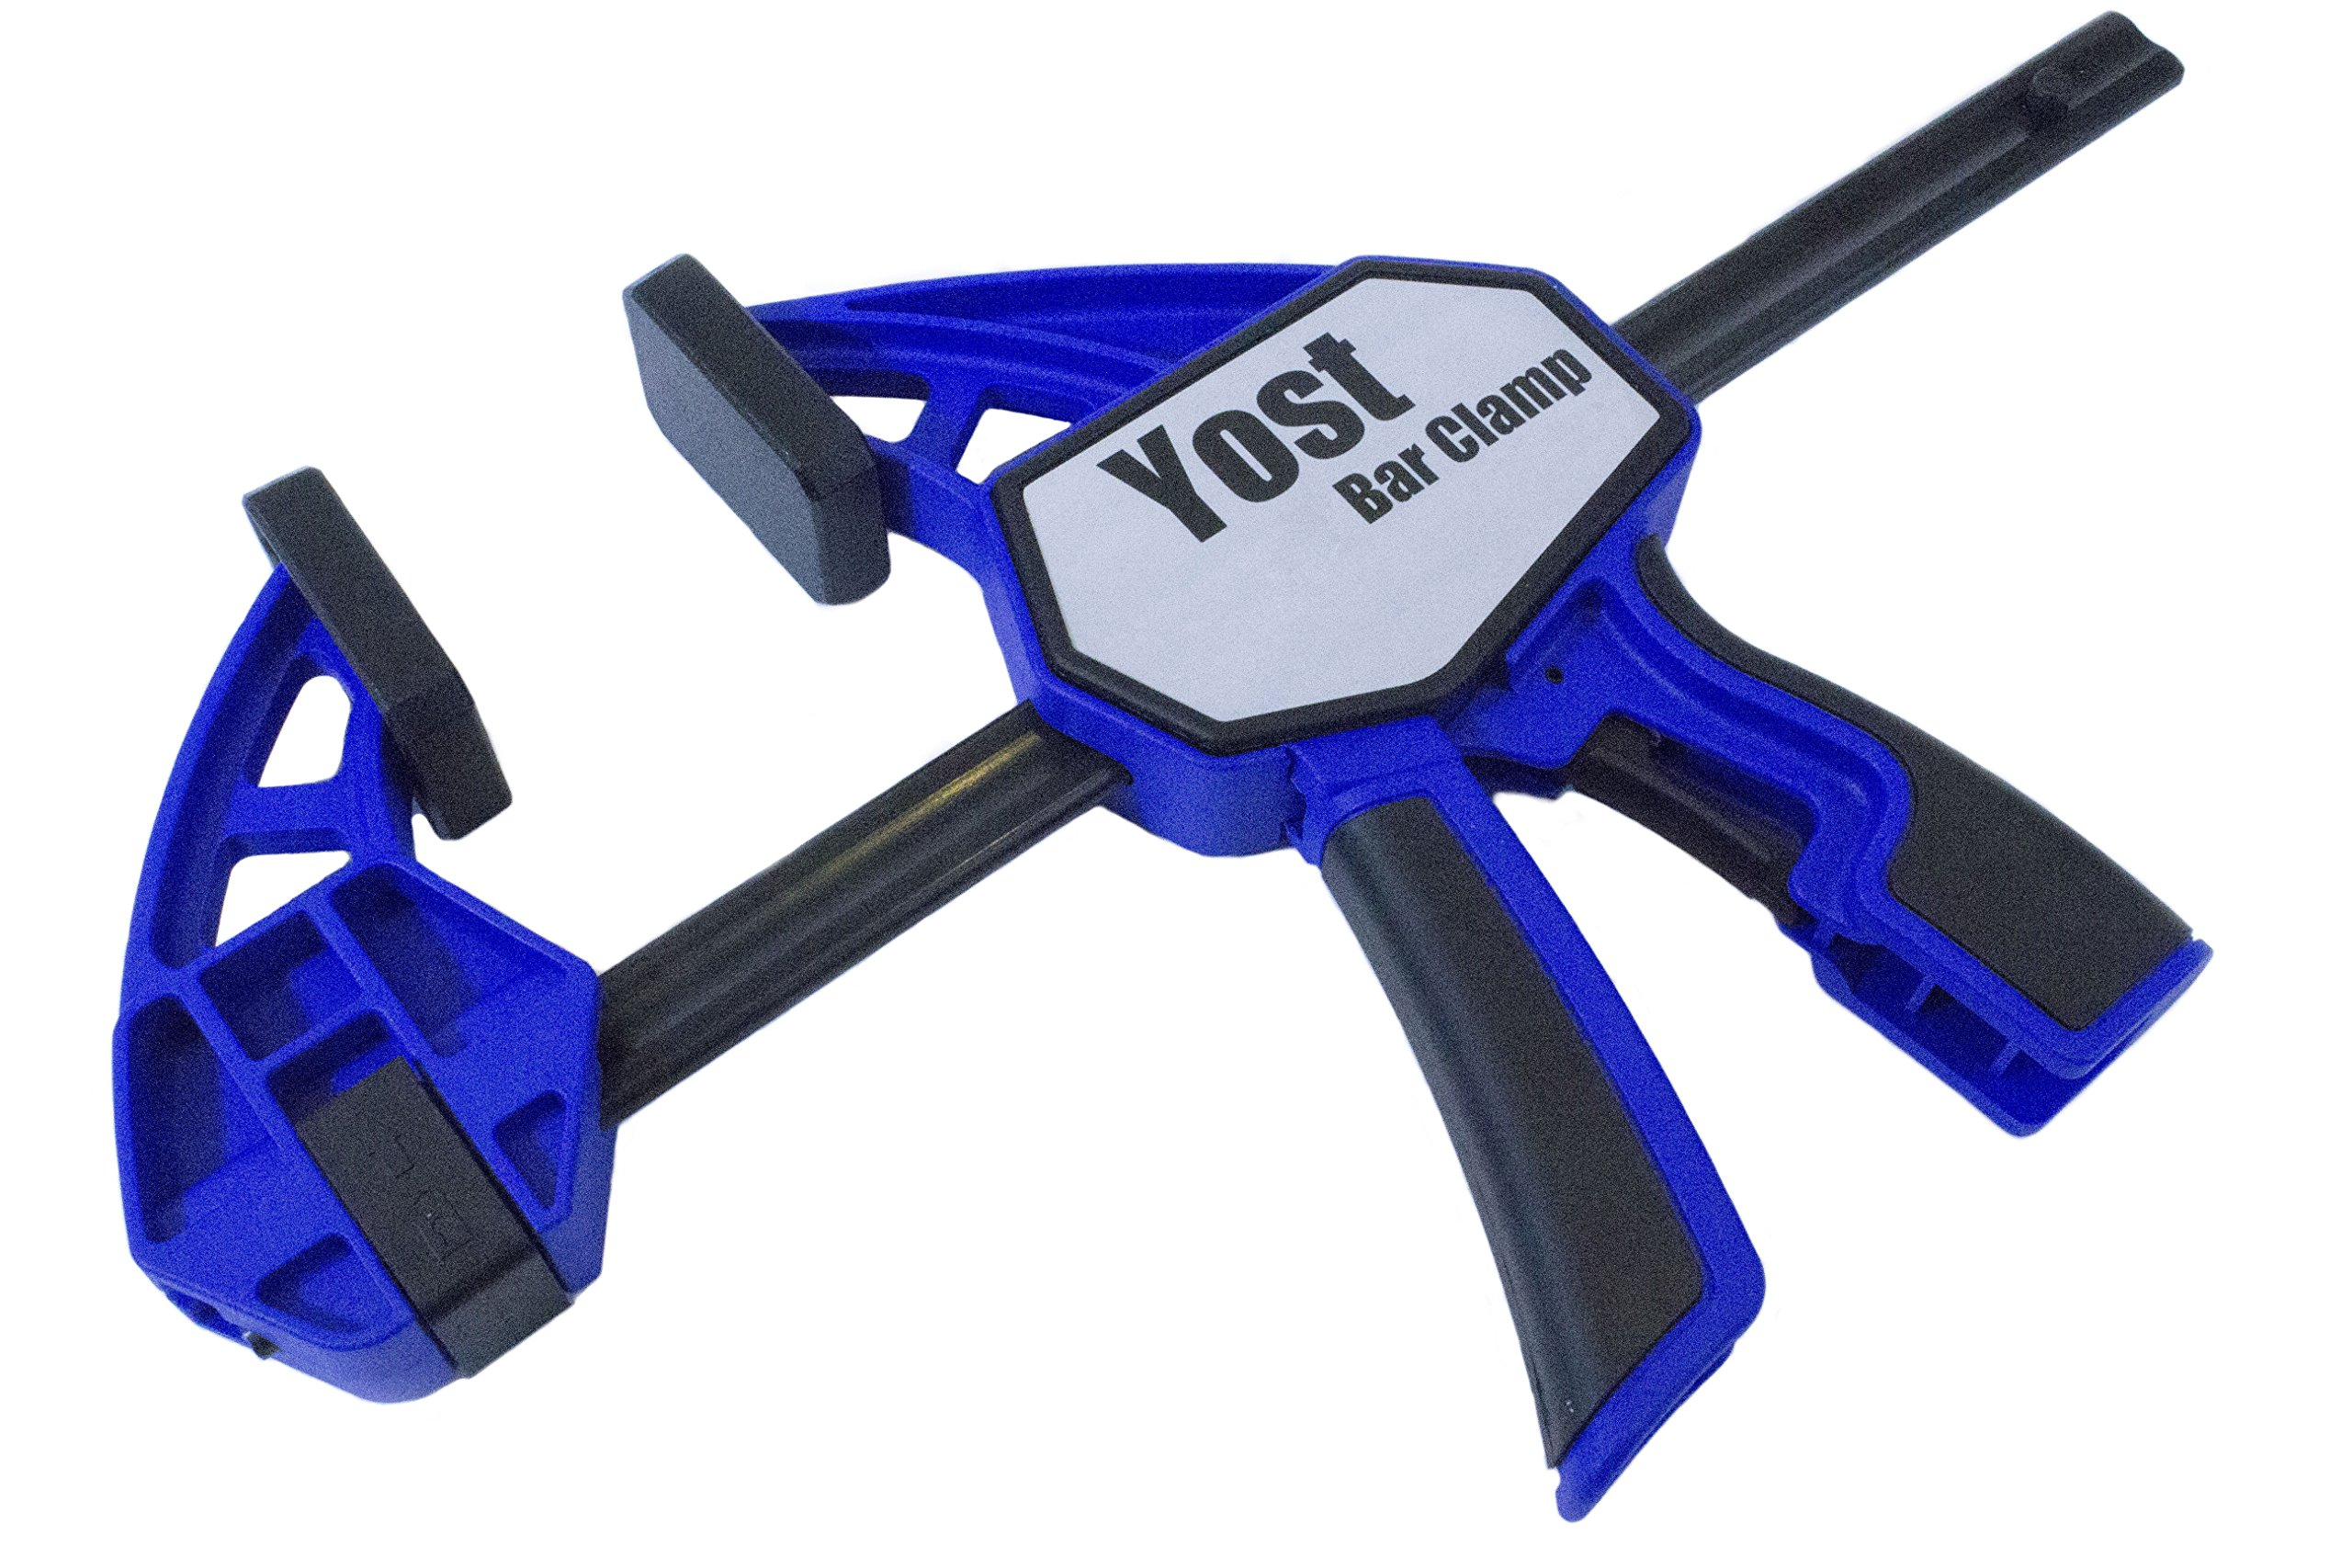 Yost 15036 36 Inch 330 lbs. Bar Clamp by Yost Tools